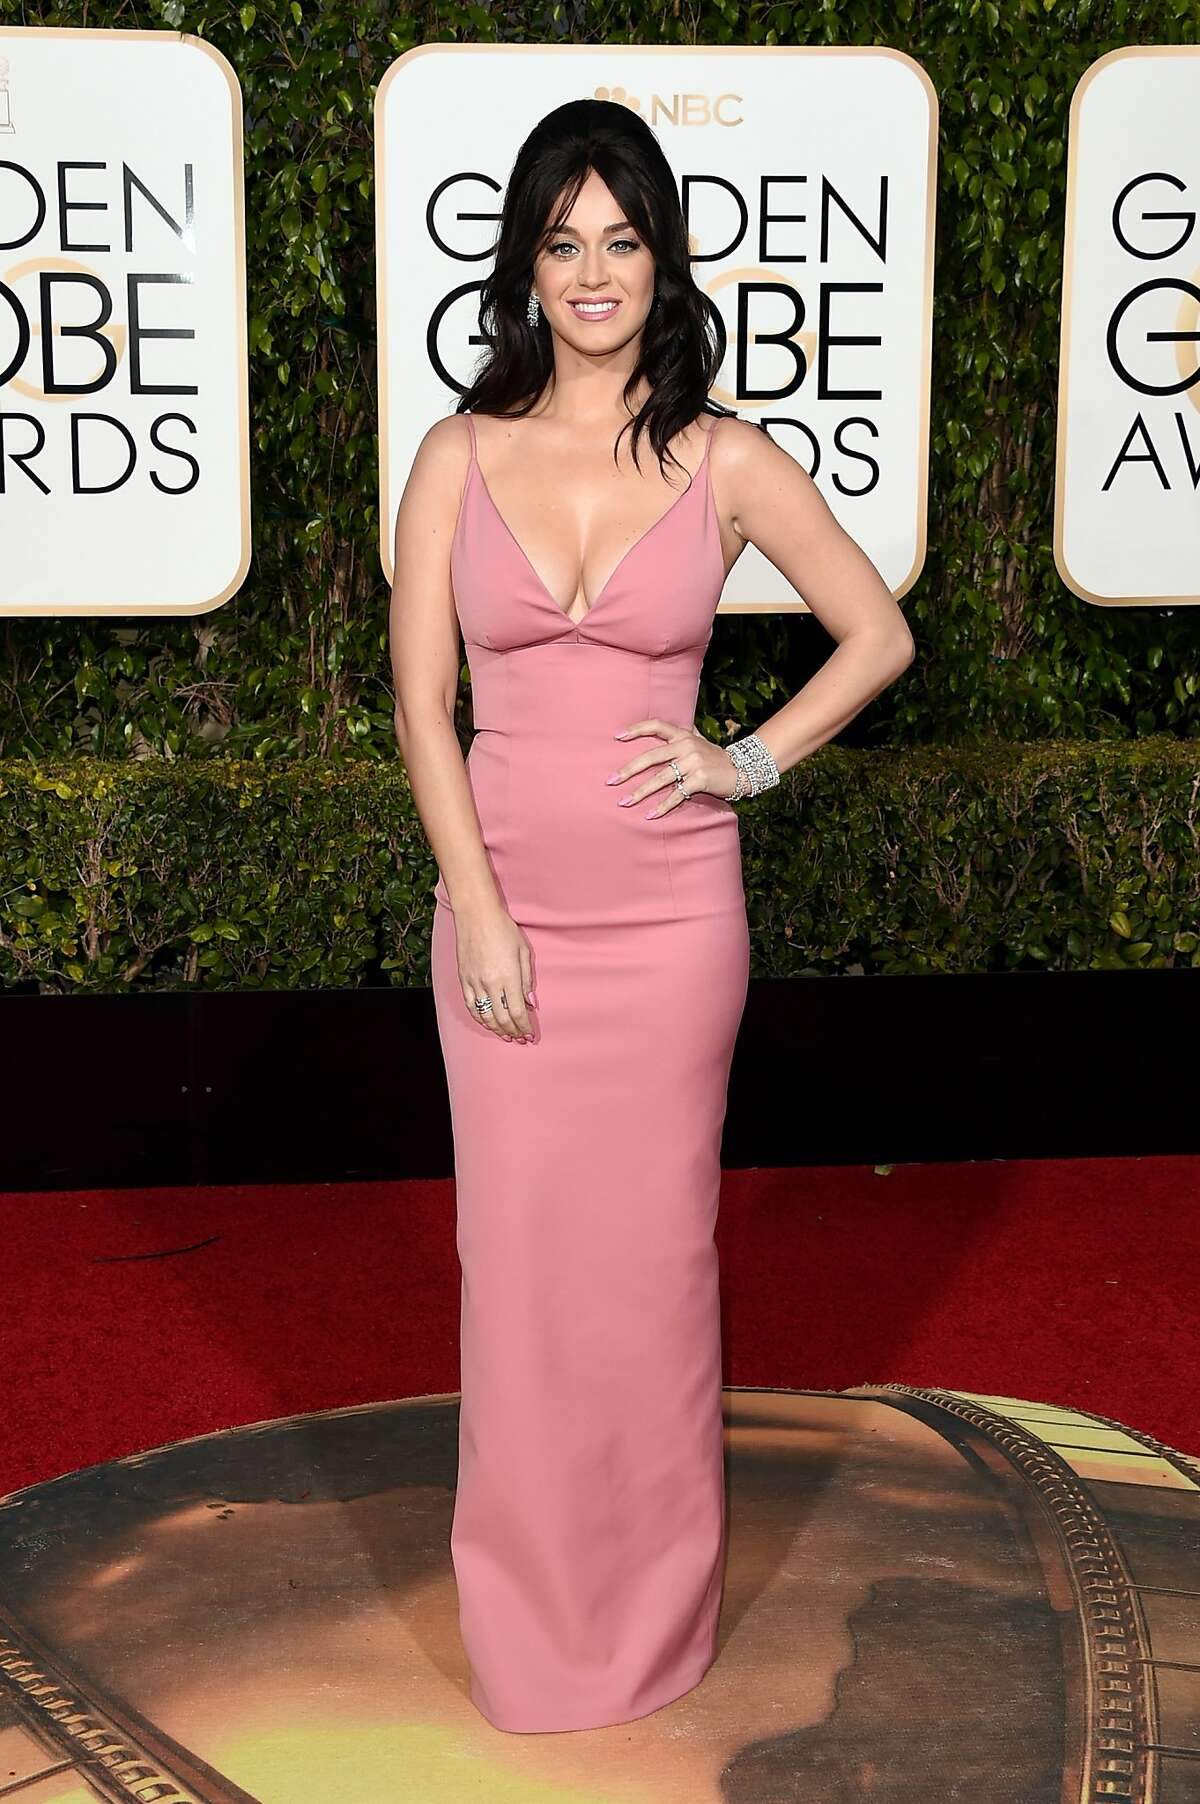 Singer Katy Perry attends the 73rd Annual Golden Globe Awards held at the Beverly Hilton Hotel on January 10, 2016 in Beverly Hills, California.